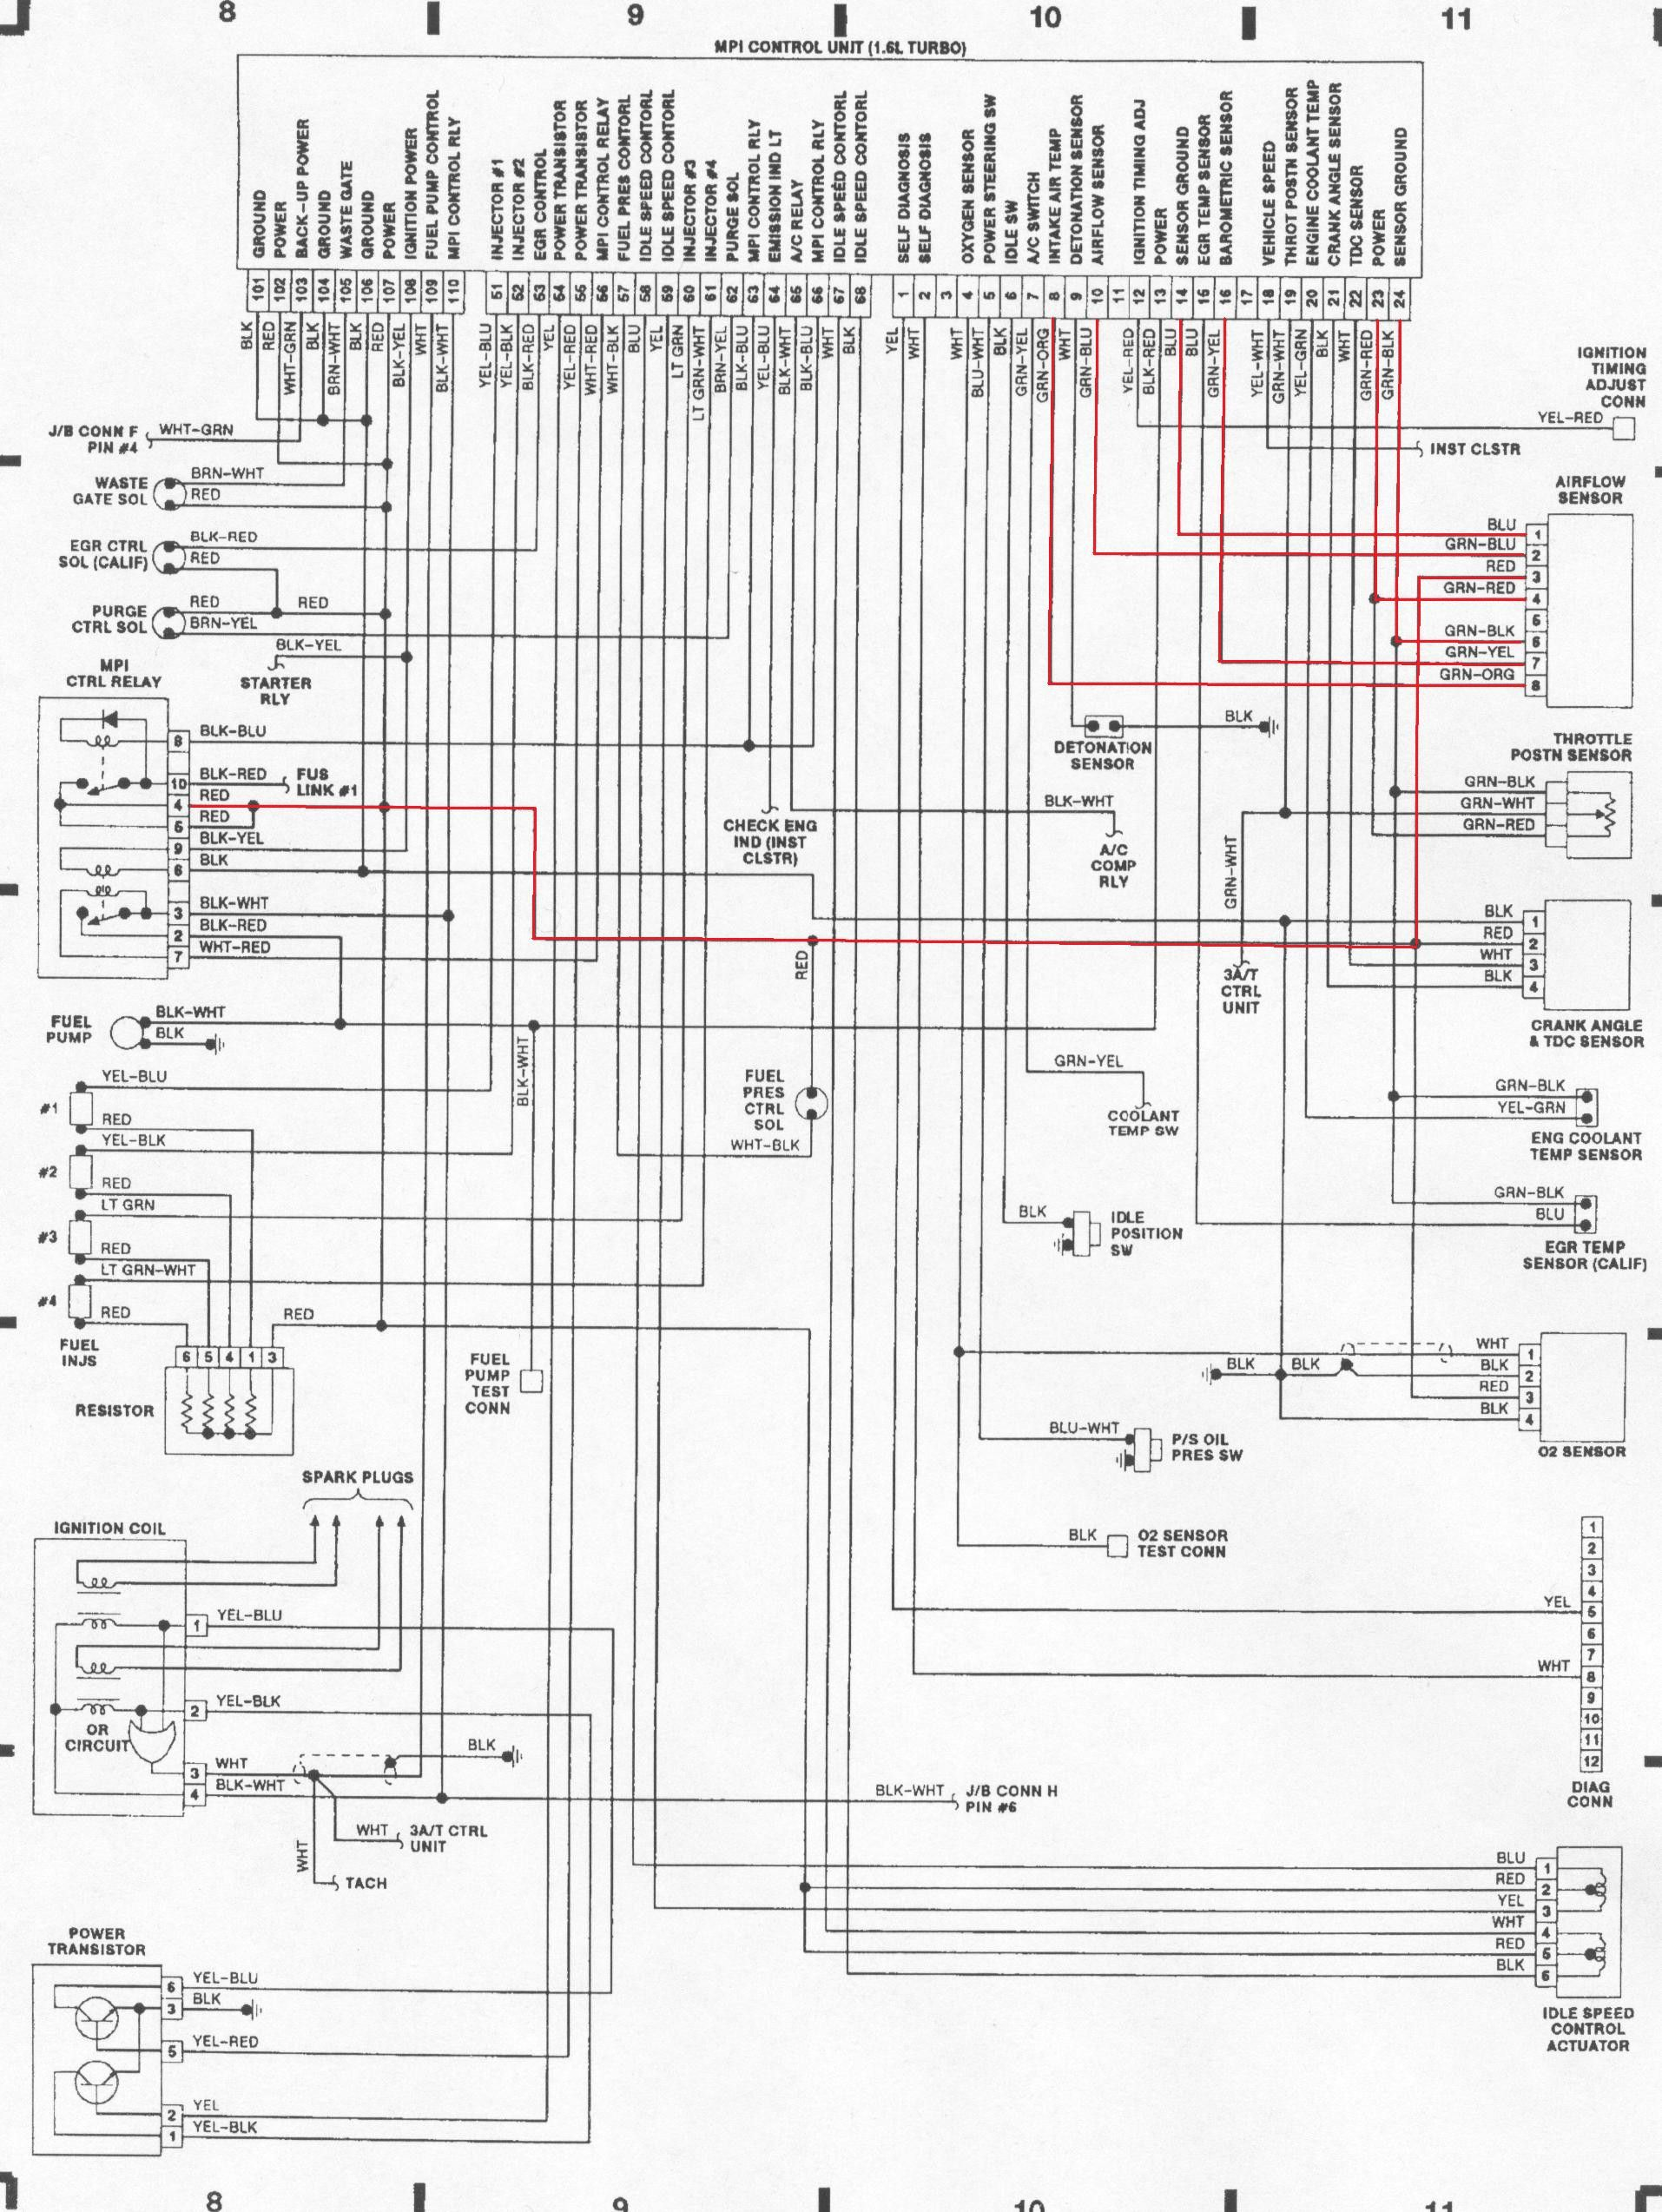 wiring diagram 4g15 pdf virtual fretboard inside mitsubishi mirage [ 1914 x 2547 Pixel ]